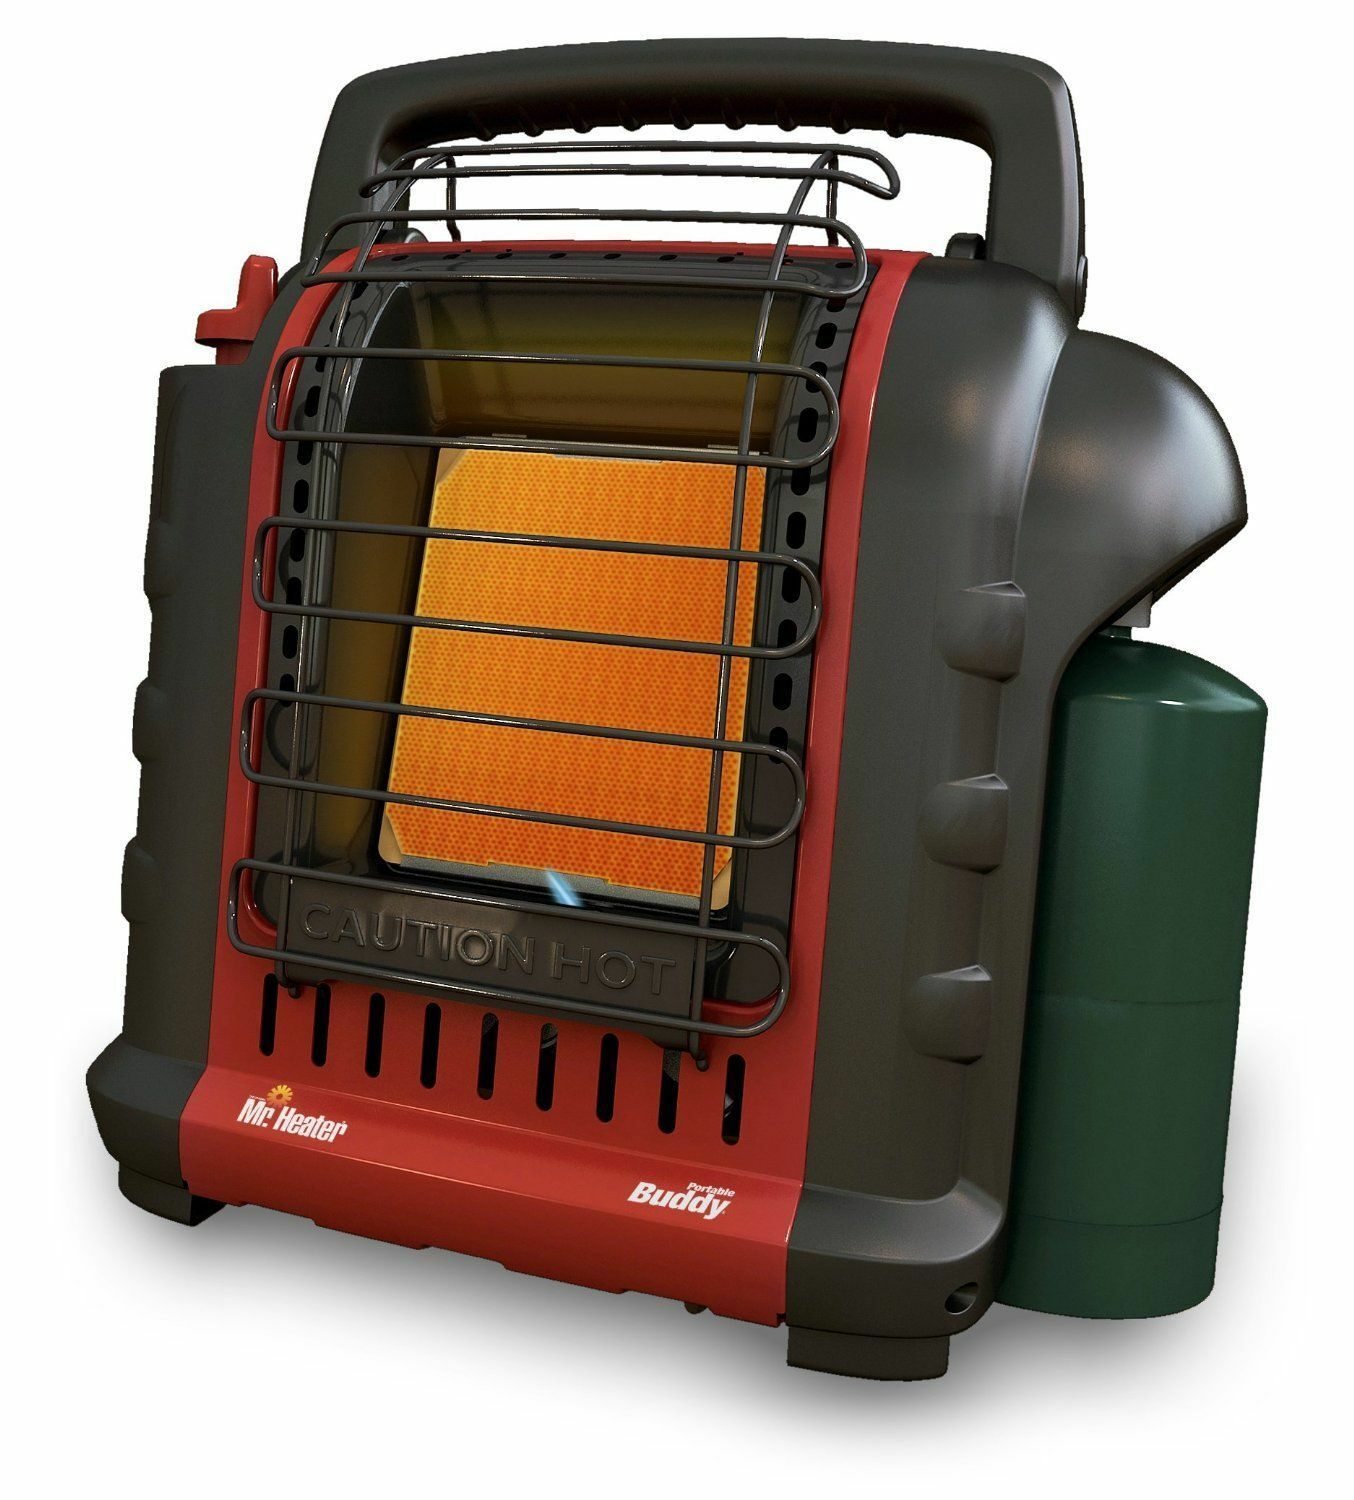 heaters model comforter heater radiant operating zone parts instructions fan comfort replacement